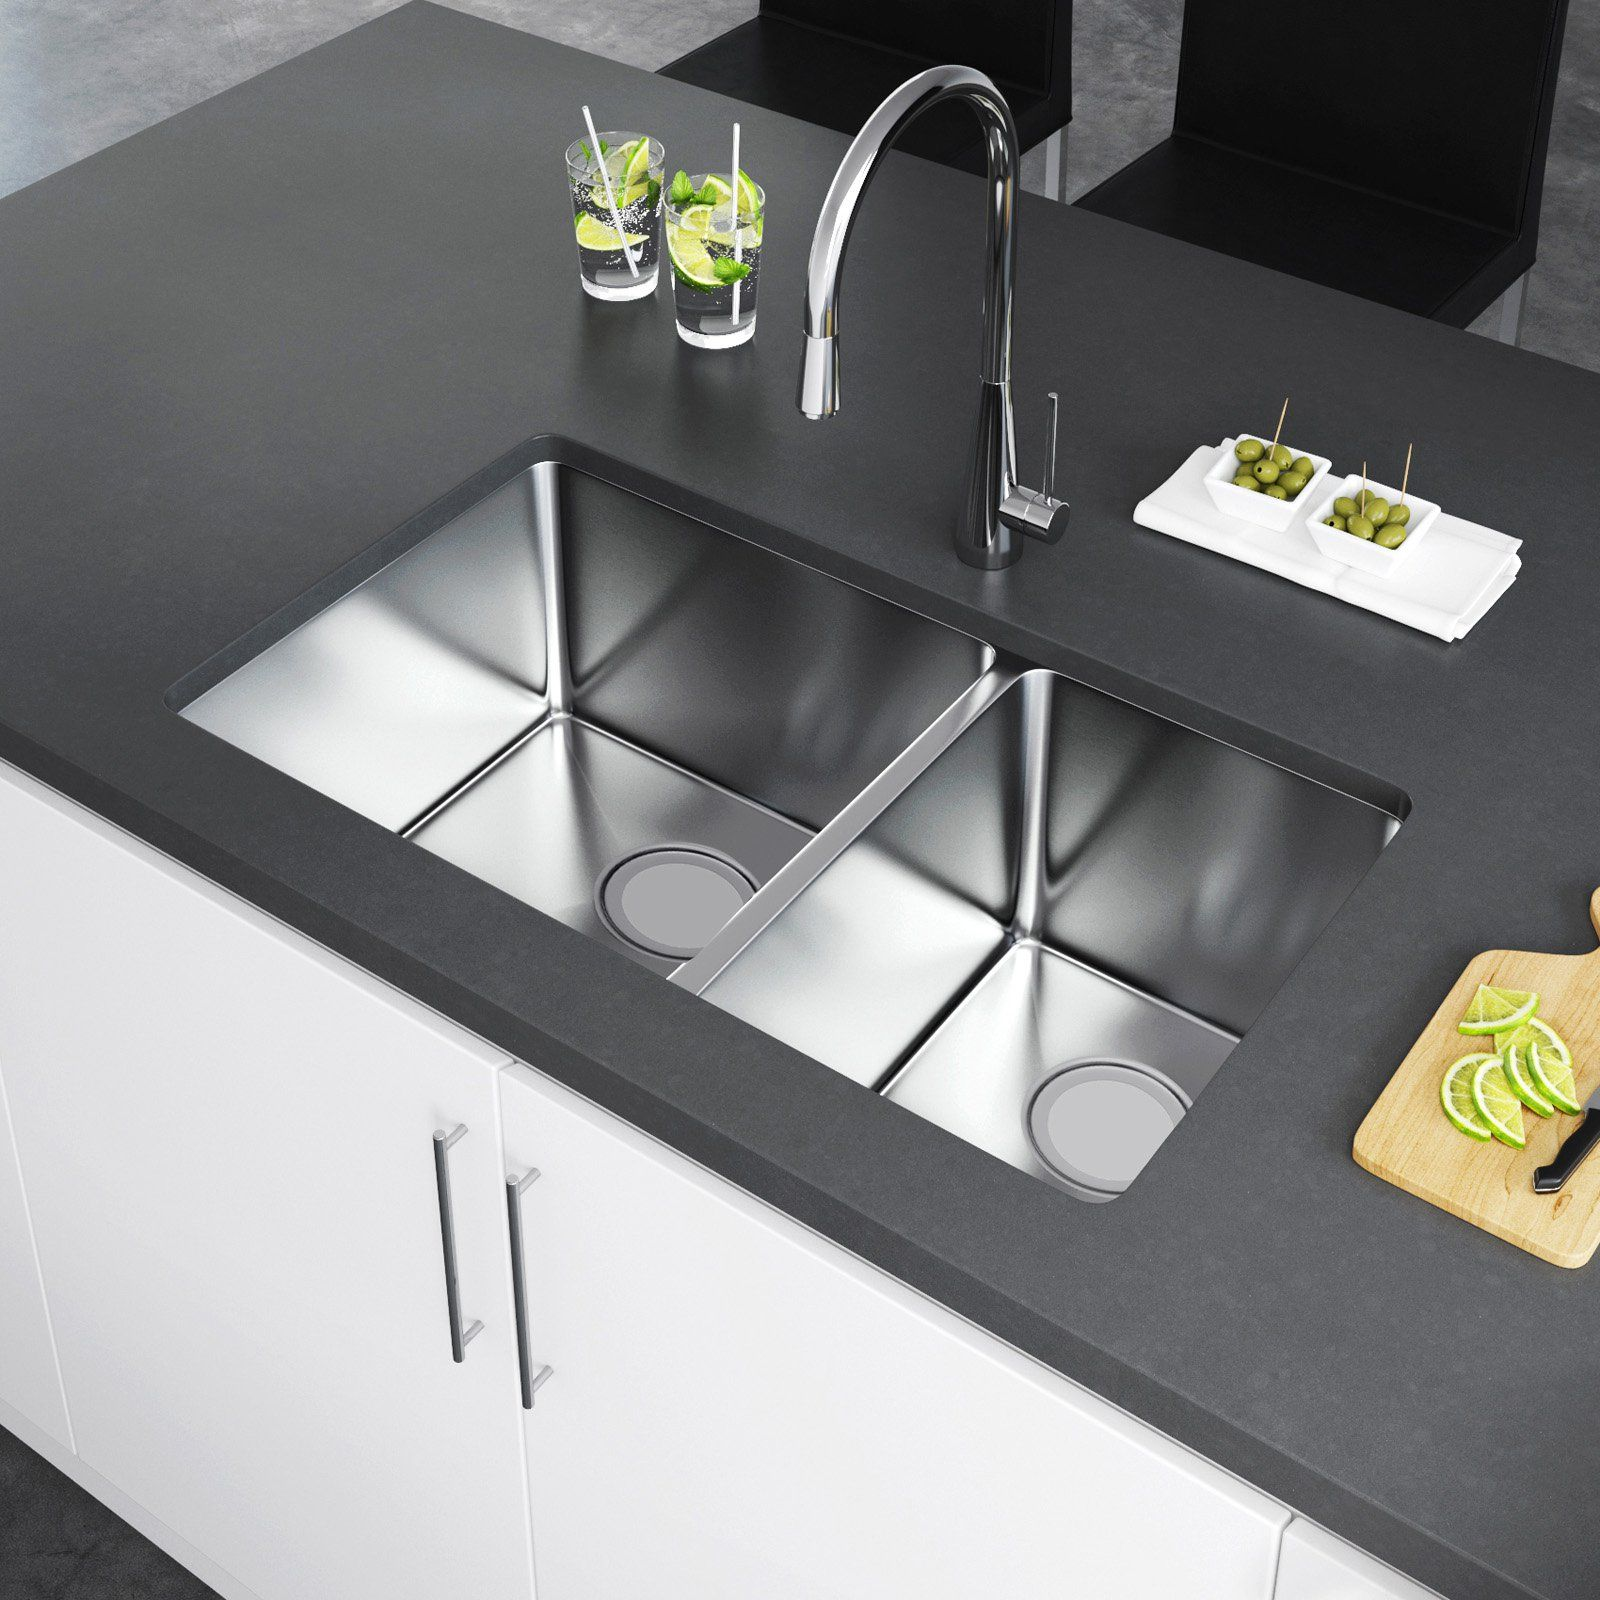 Exclusive Heritage Double Bowl Undermount Ksh 3219 D6 Kitchen Sink